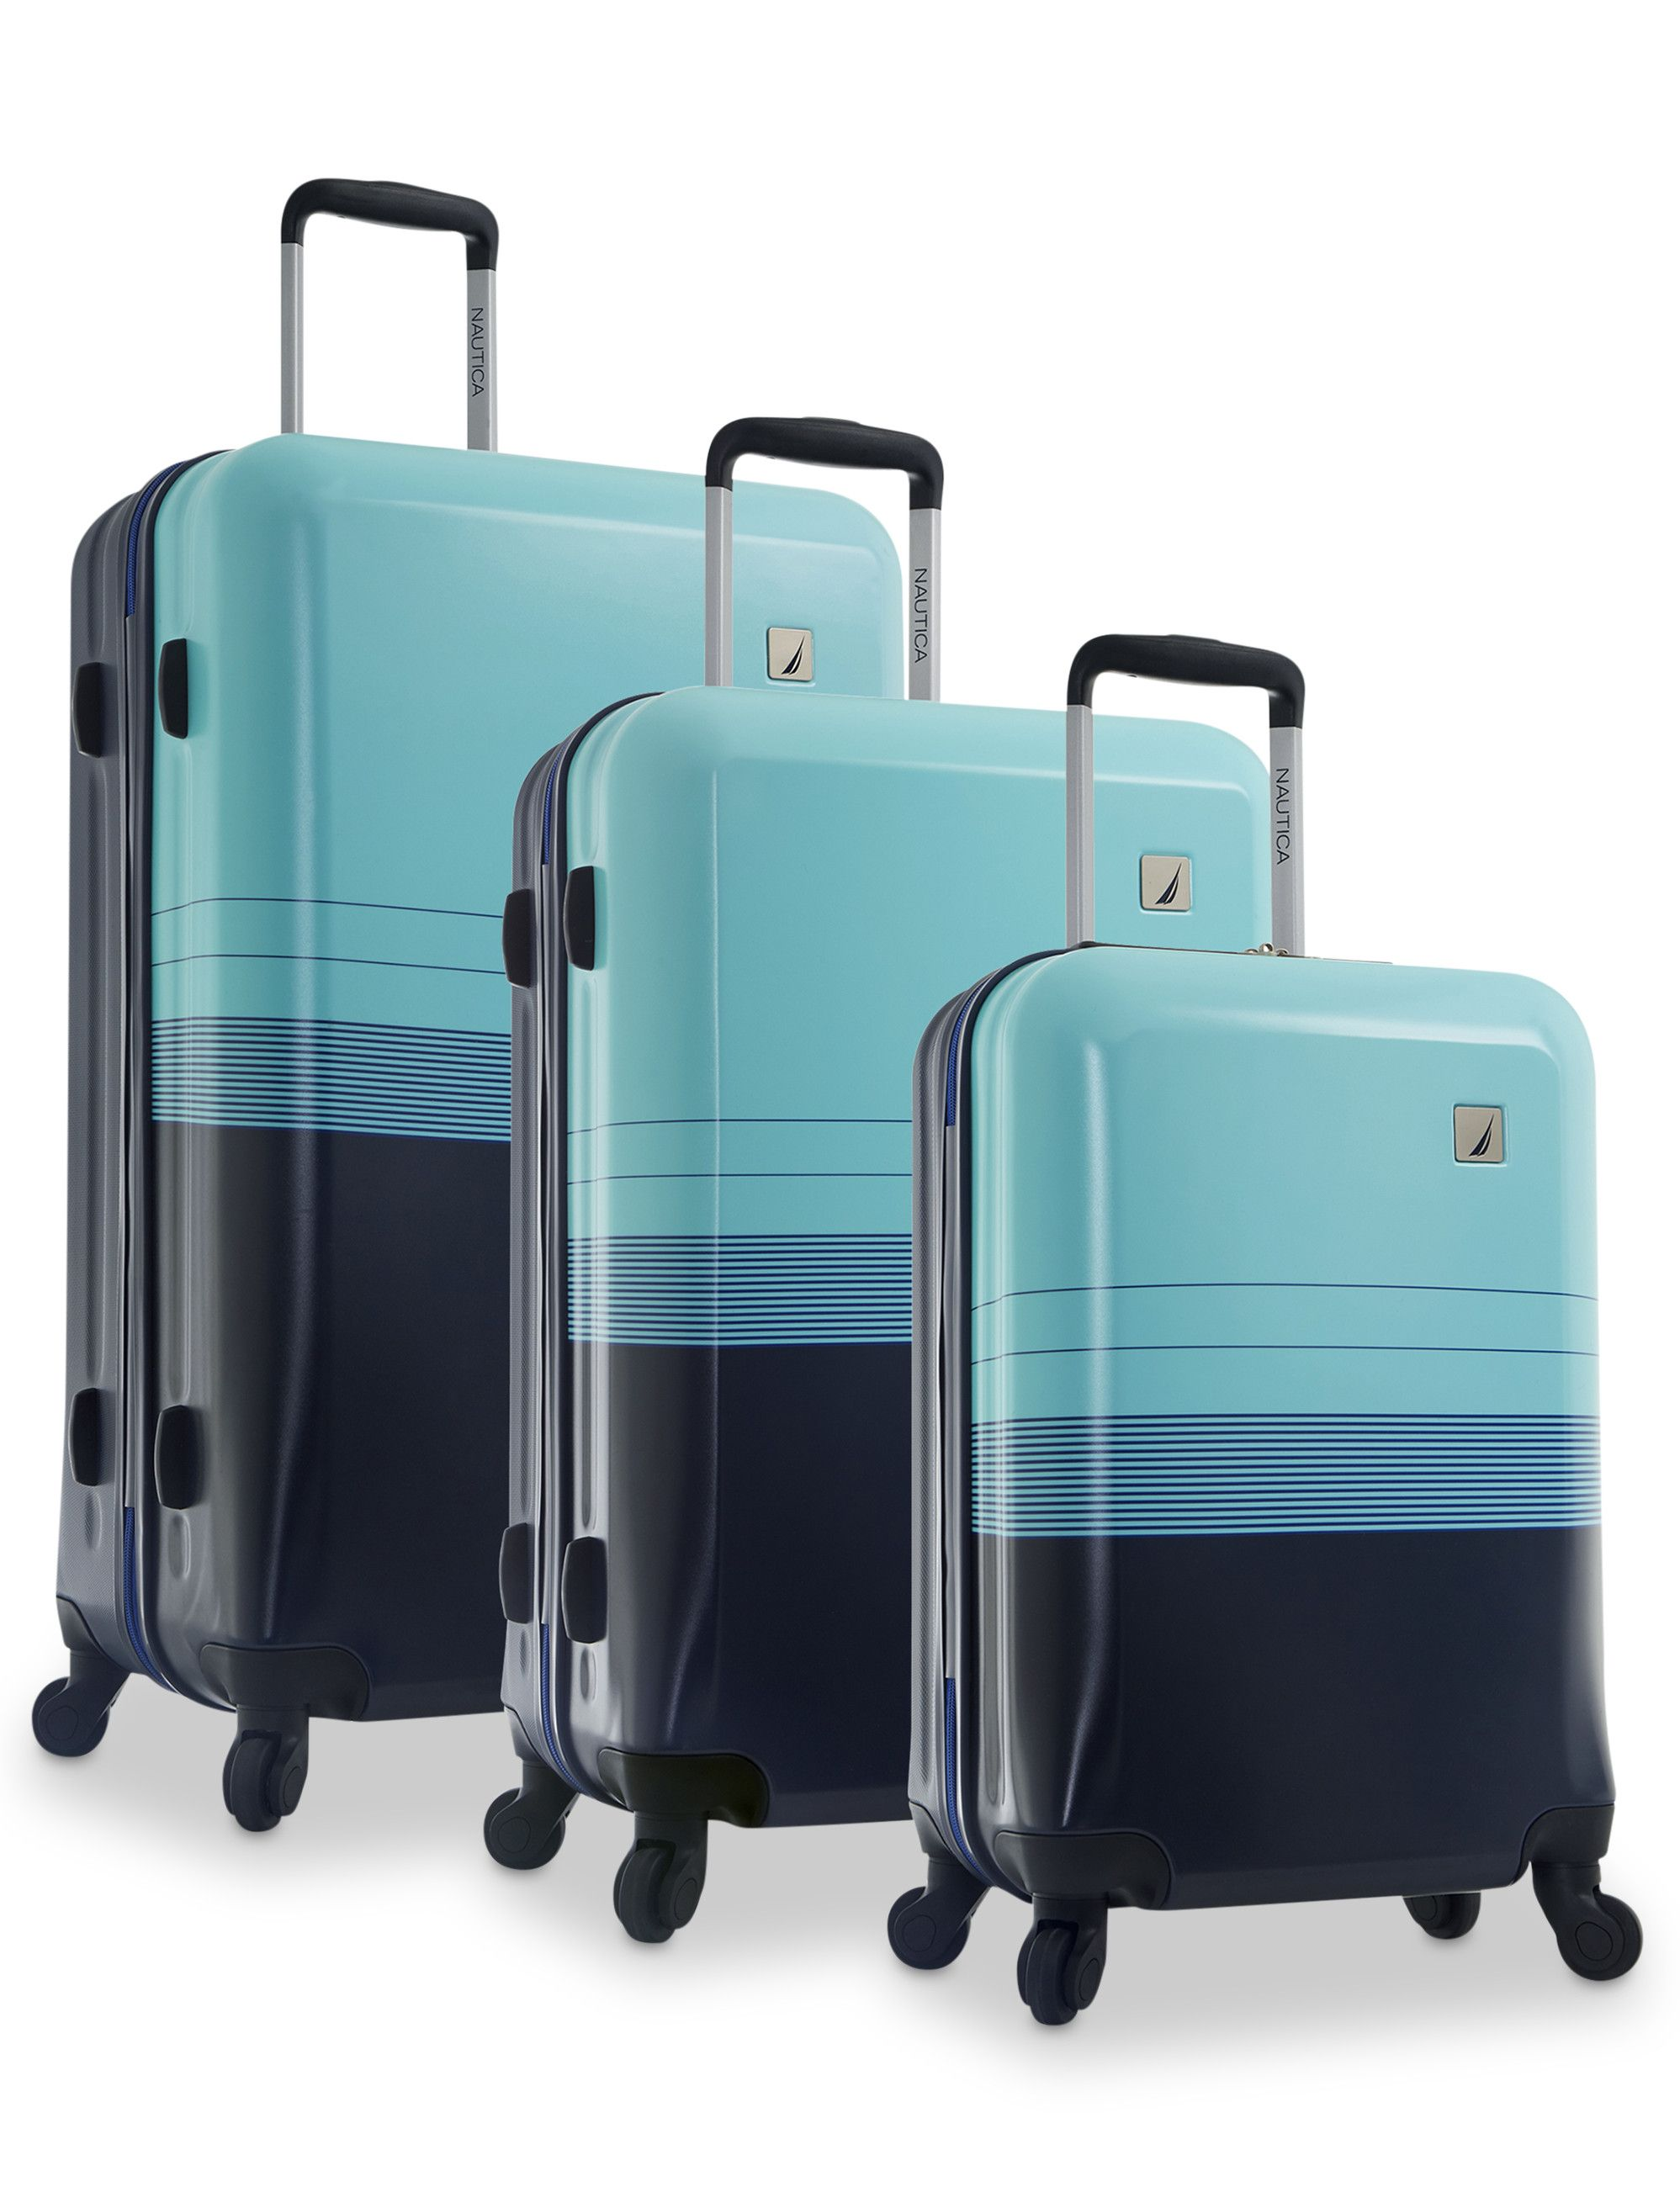 295f0fd713b8 Nautica® 3-Piece Hardside Luggage Set | Details | Hardside luggage ...